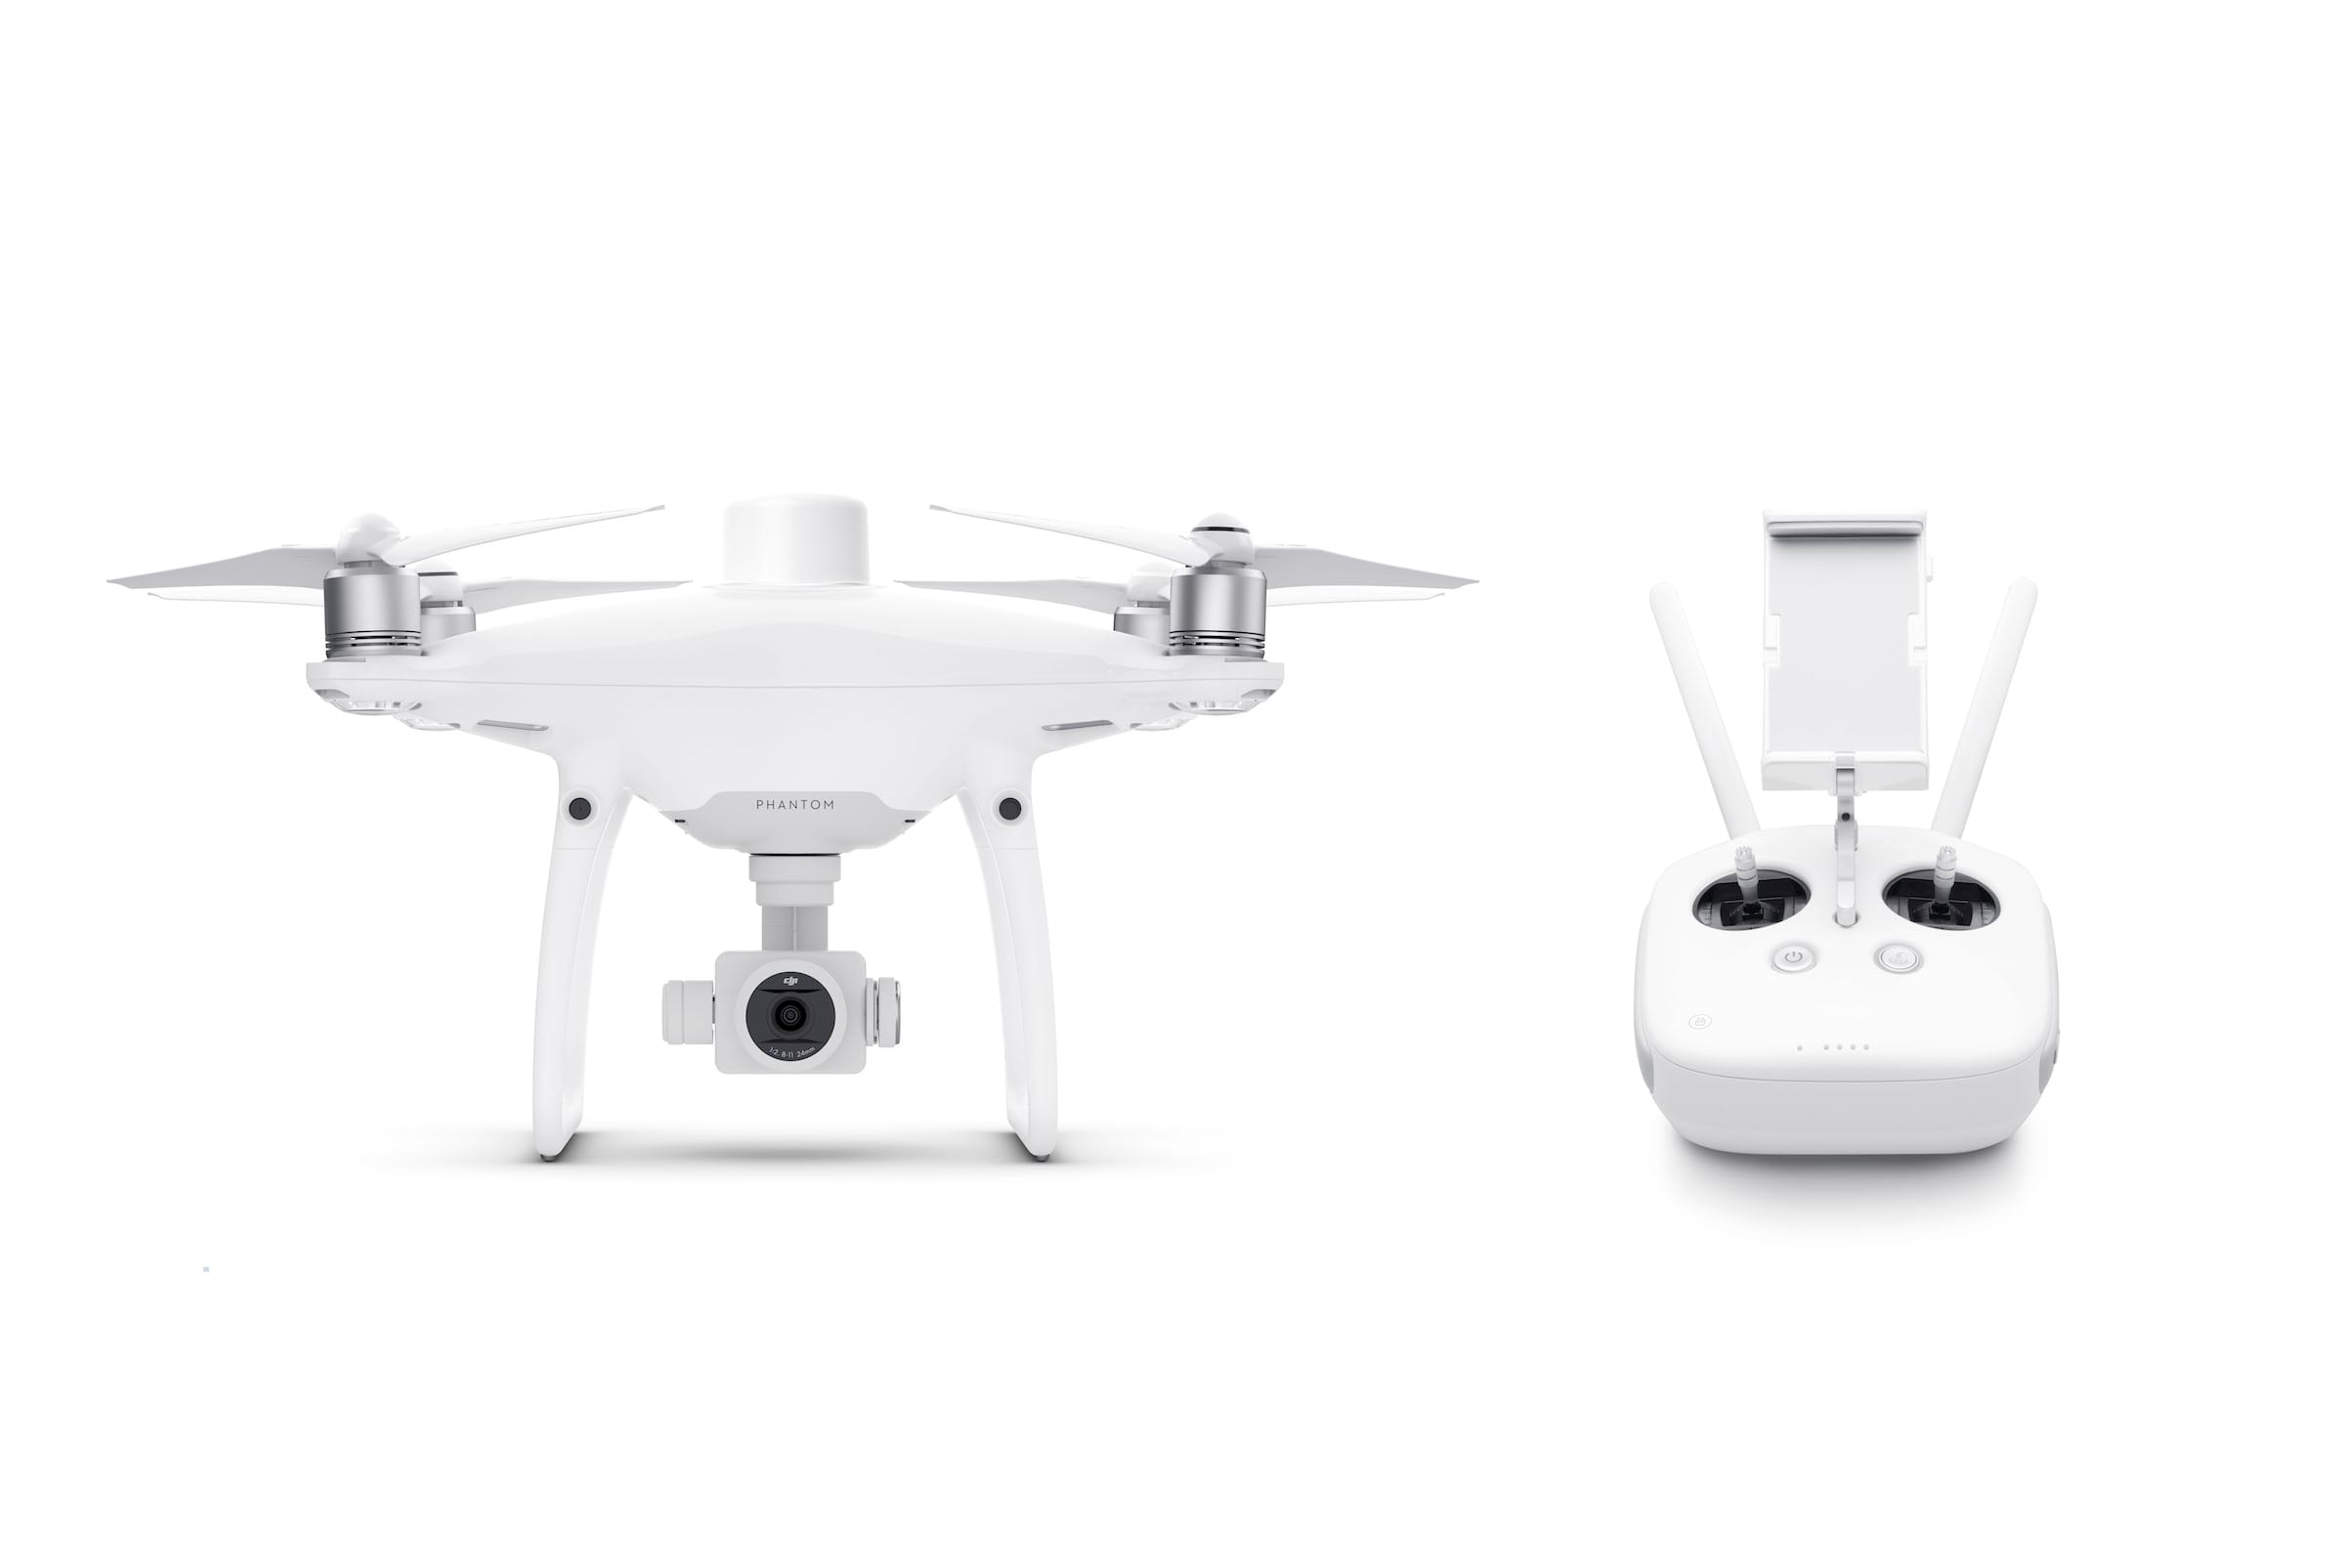 DJI Phantom 4 RTK Drone and SDK Controller